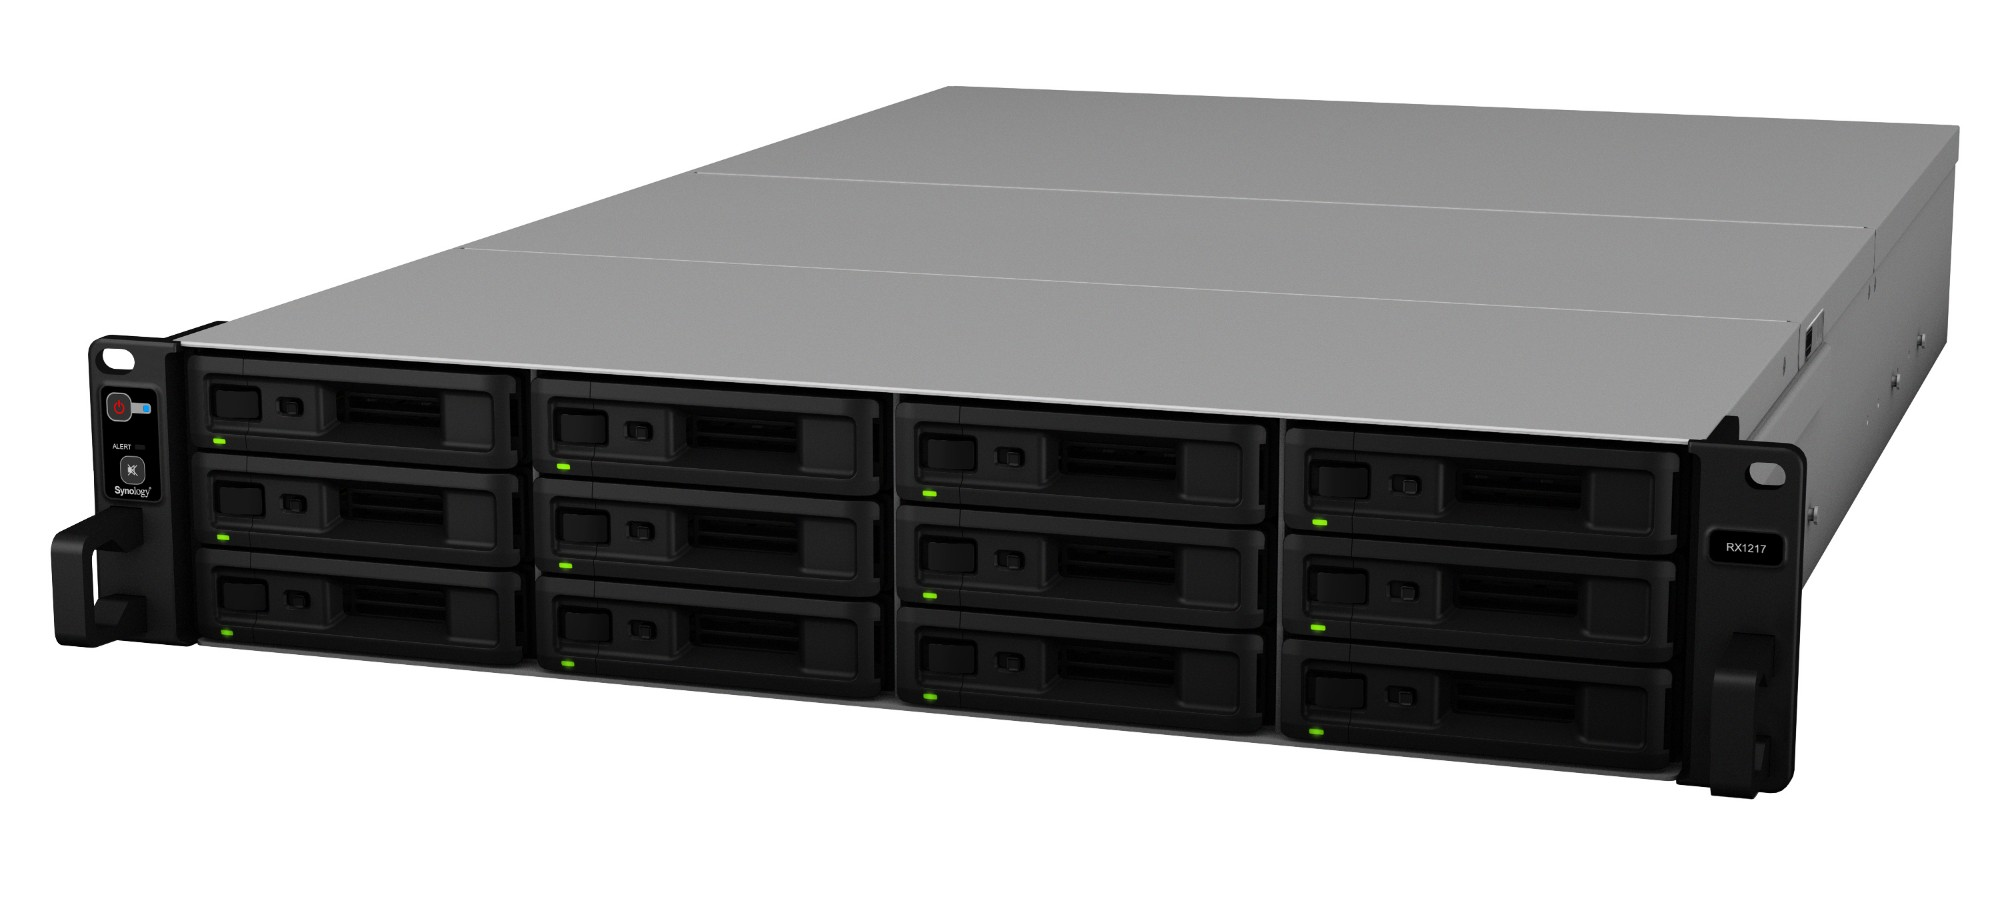 Synology RX1217/168TB GOLD 12 Bay Rack